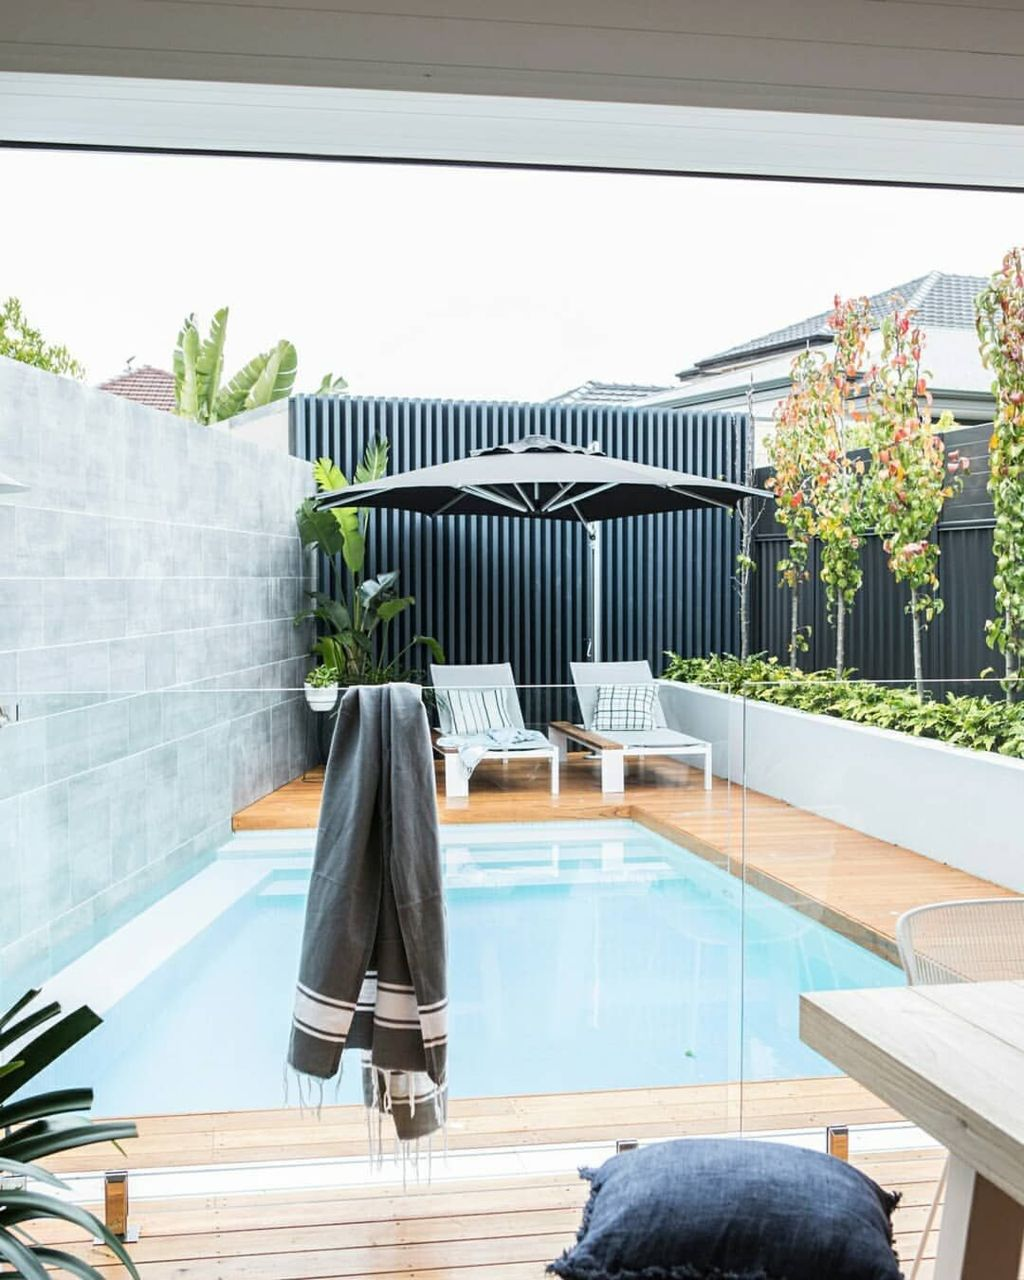 Small swimming pools made for small spaces and tight budgets Part 21